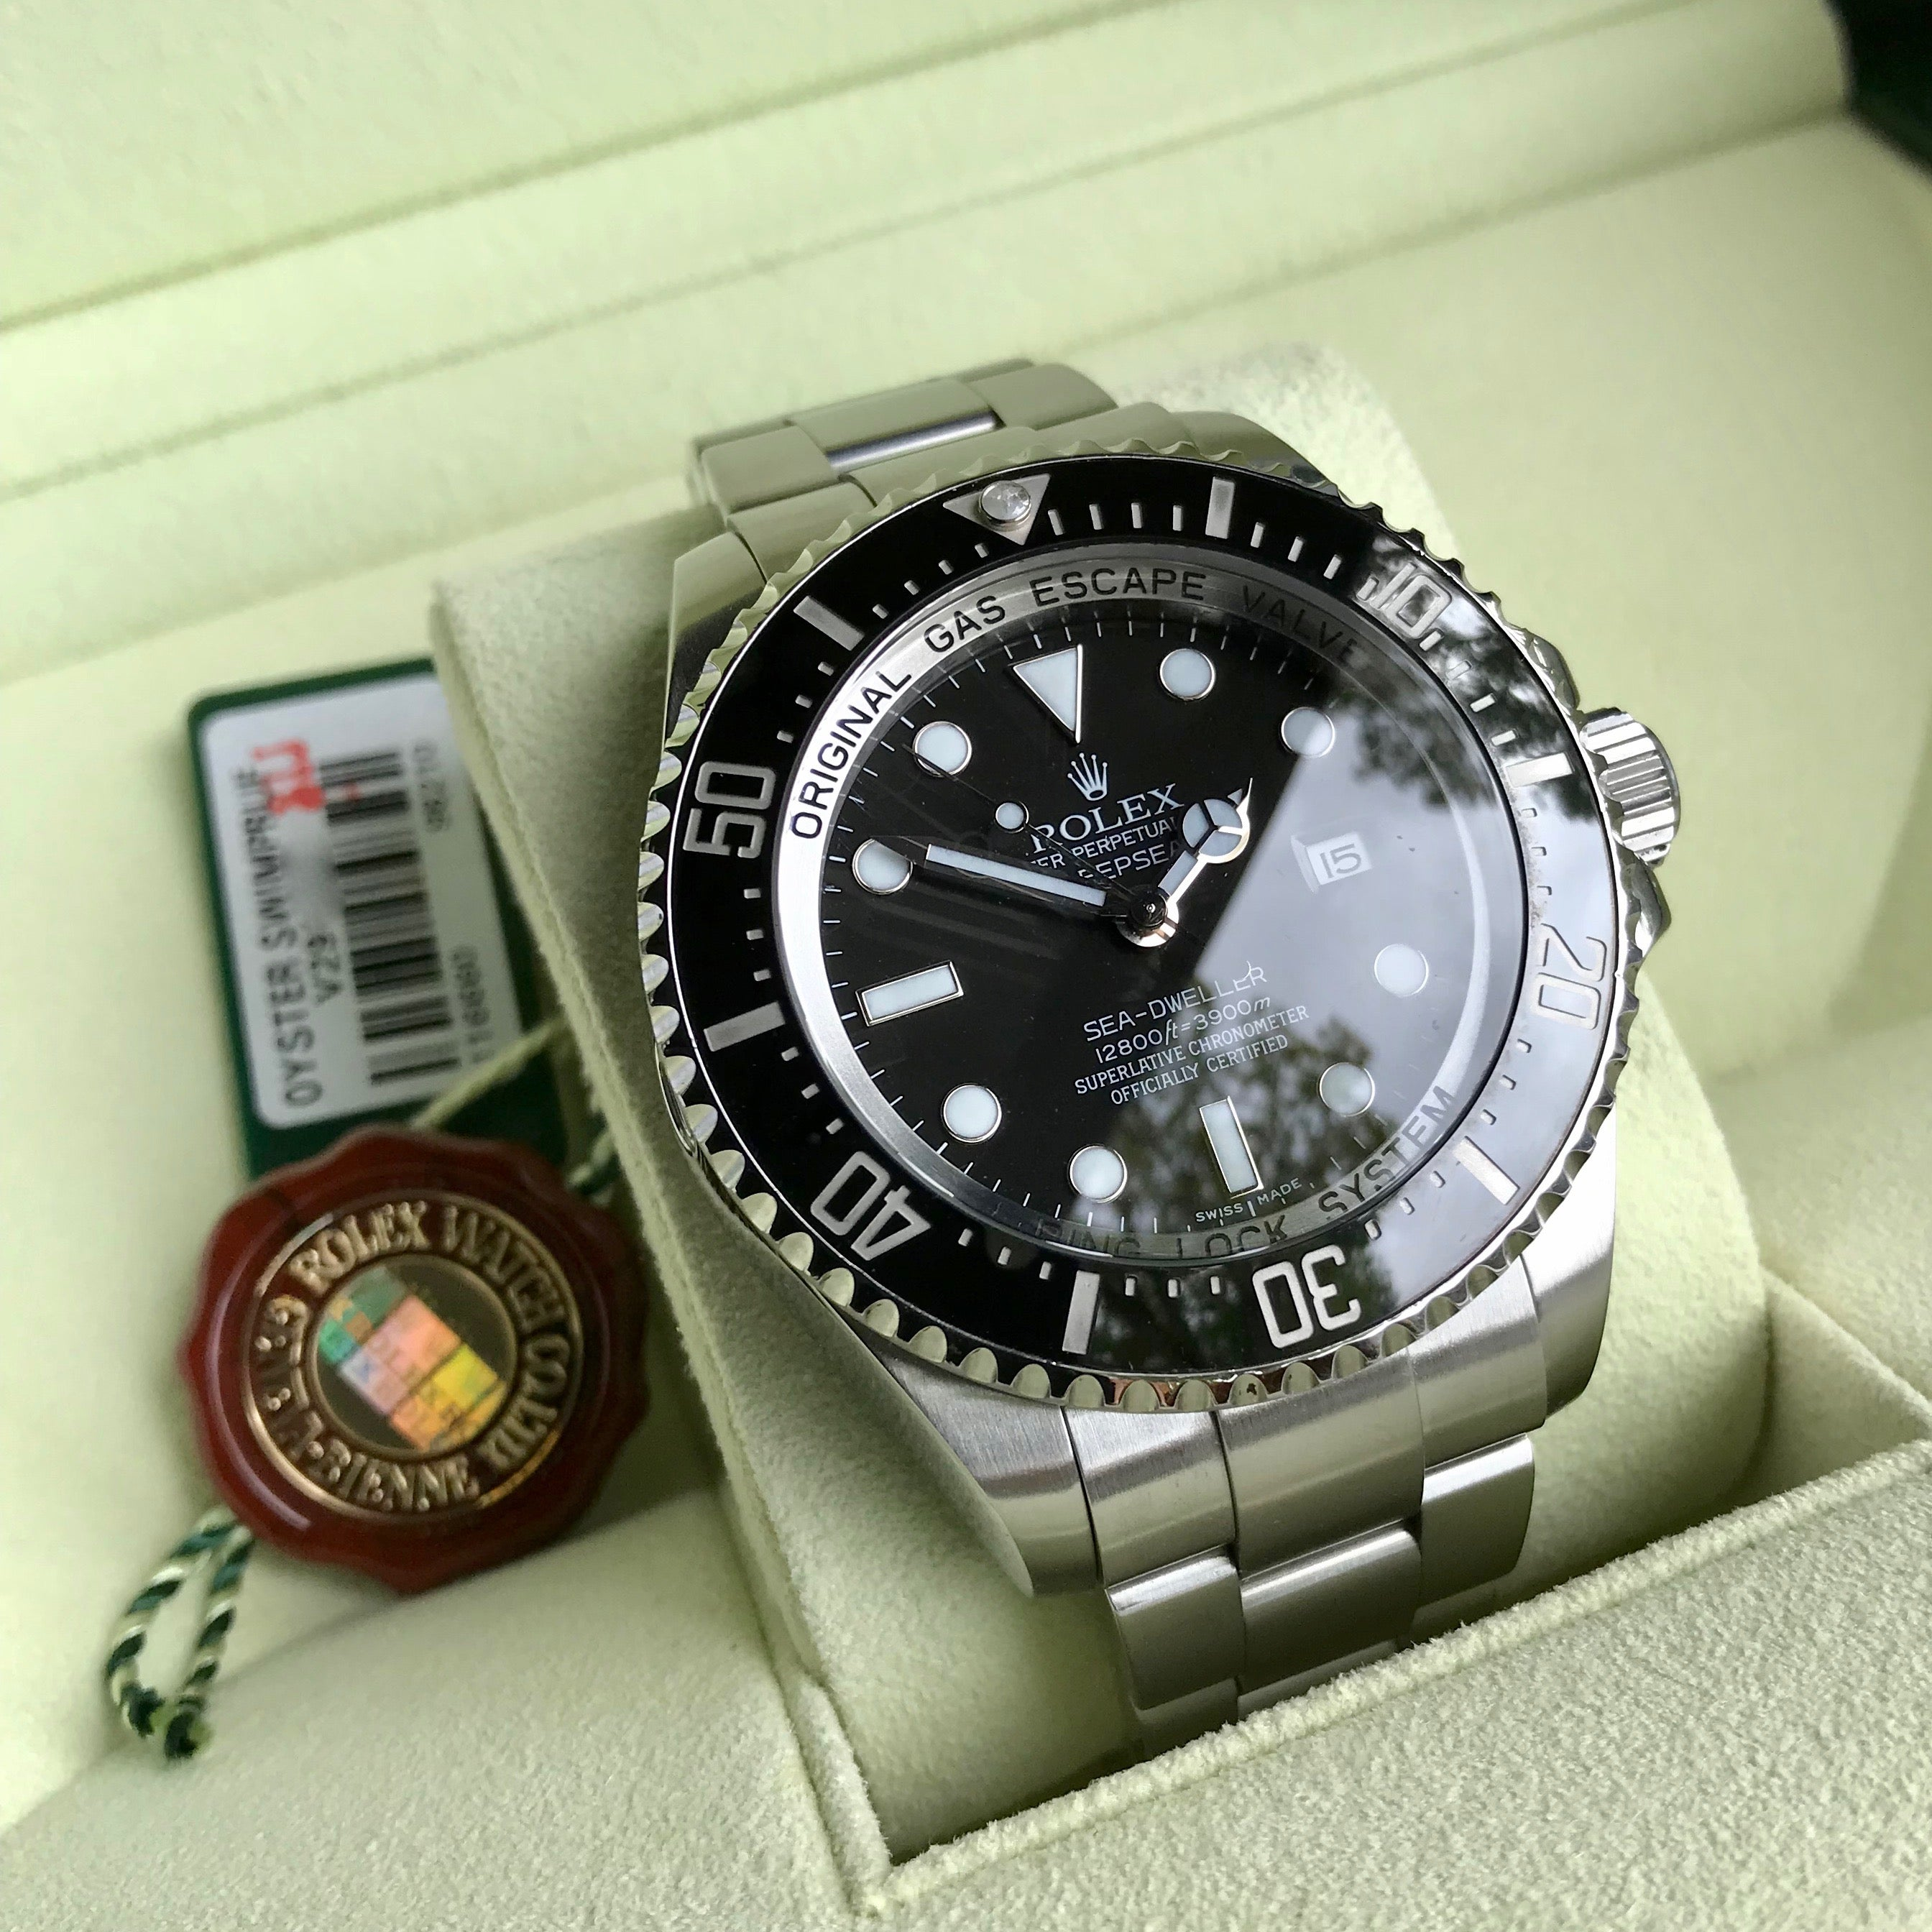 Rolex SEA DWELLER DEEPSEA 116660 Ceramic Mens 44mm Automatic Wristwatch Box & Papers - Hashtag Watch Company